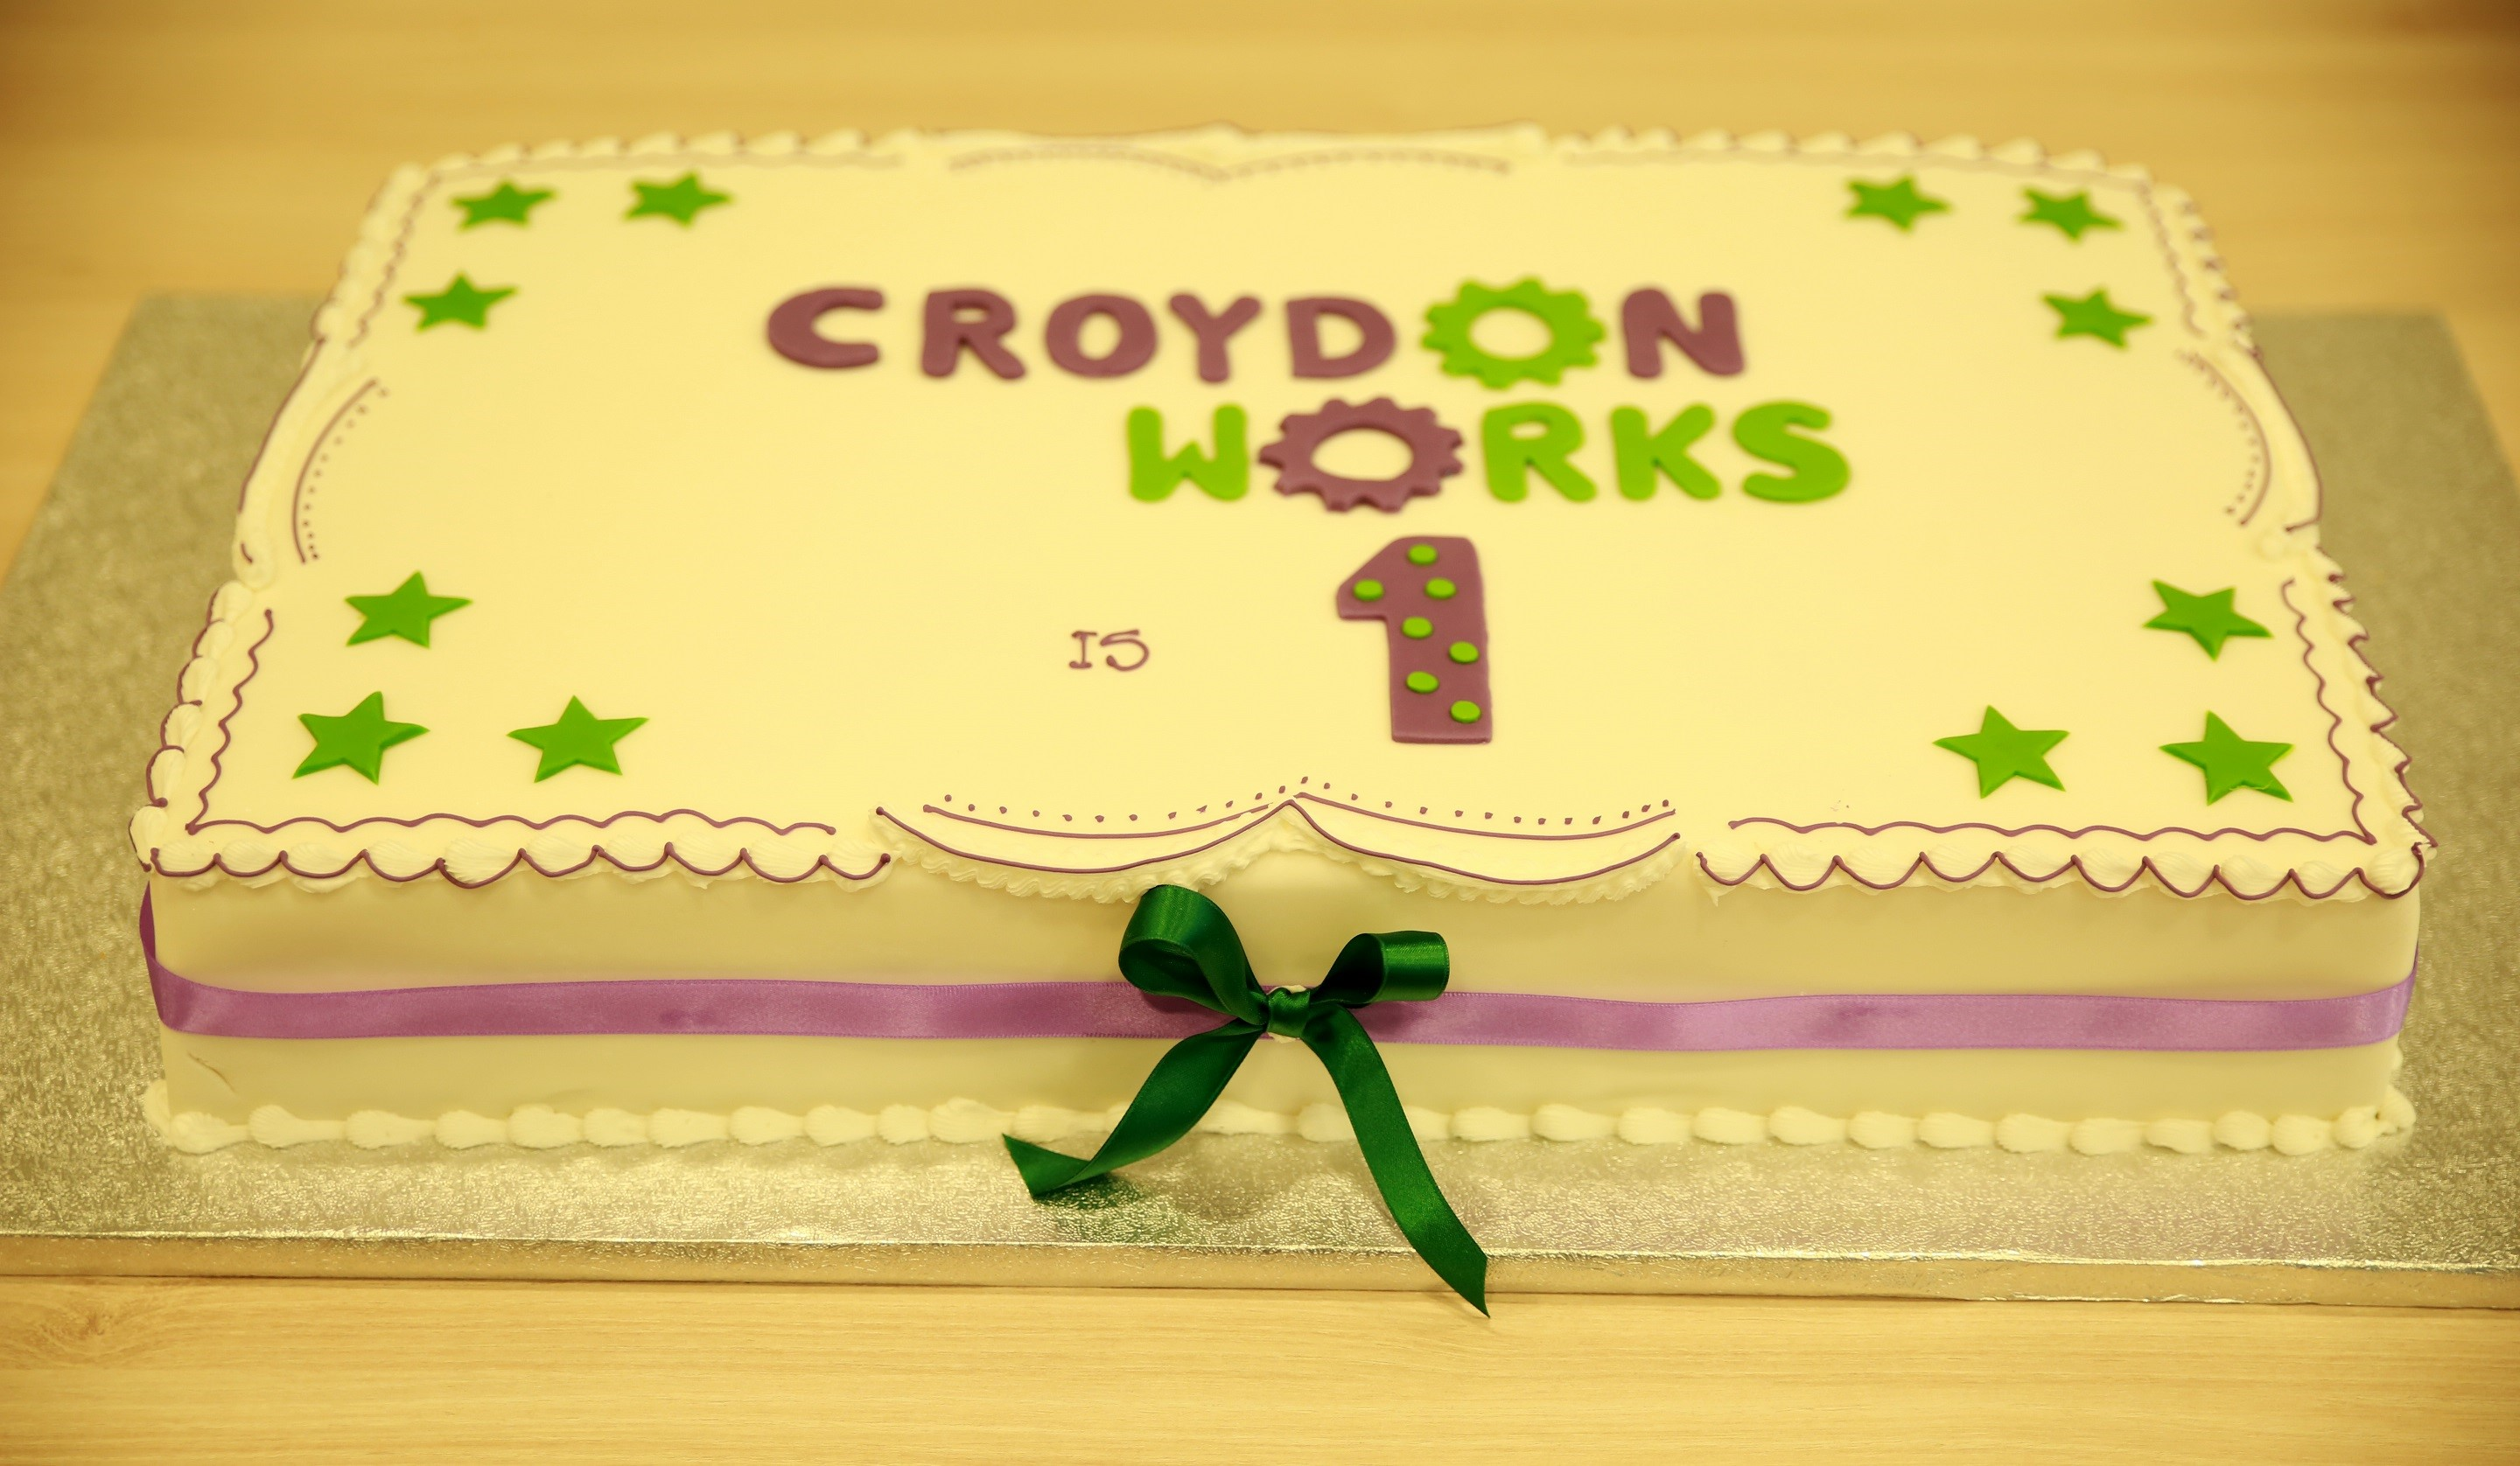 Croydon Works celebrates a successful first year